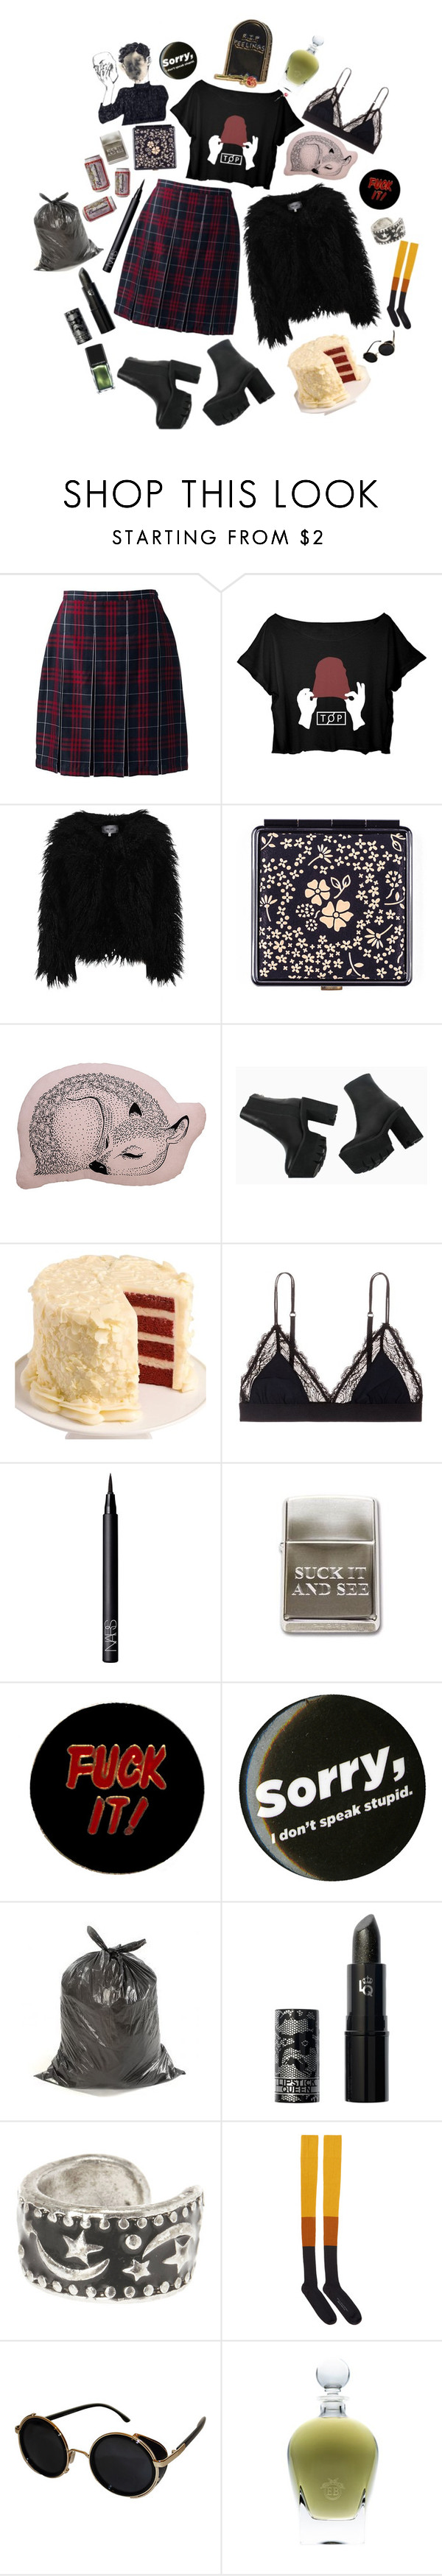 """Vera"" by anna-pensky ❤ liked on Polyvore featuring Lands' End, Dry Lake, Black, Bloomingville, We Take the Cake, LoveStories, NARS Cosmetics, Humör, Lipstick Queen and STELLA McCARTNEY"